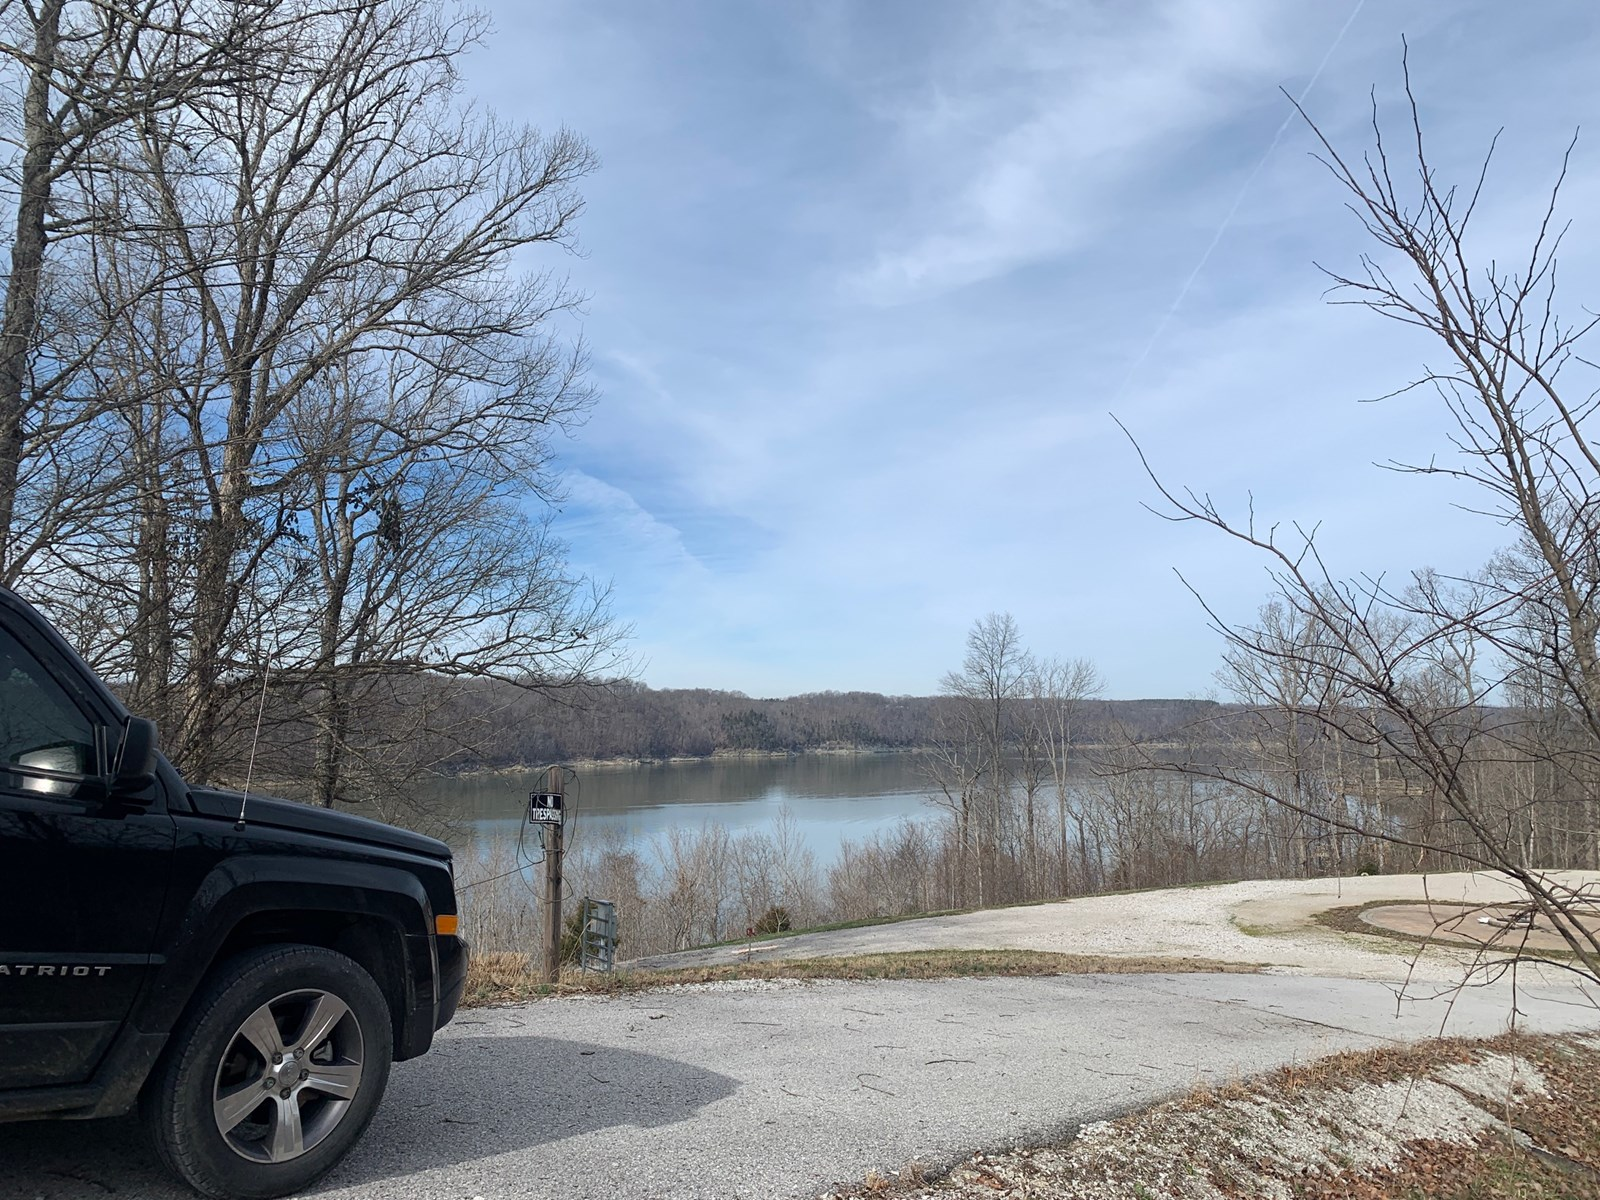 Building lot for sale, Monticello, KY